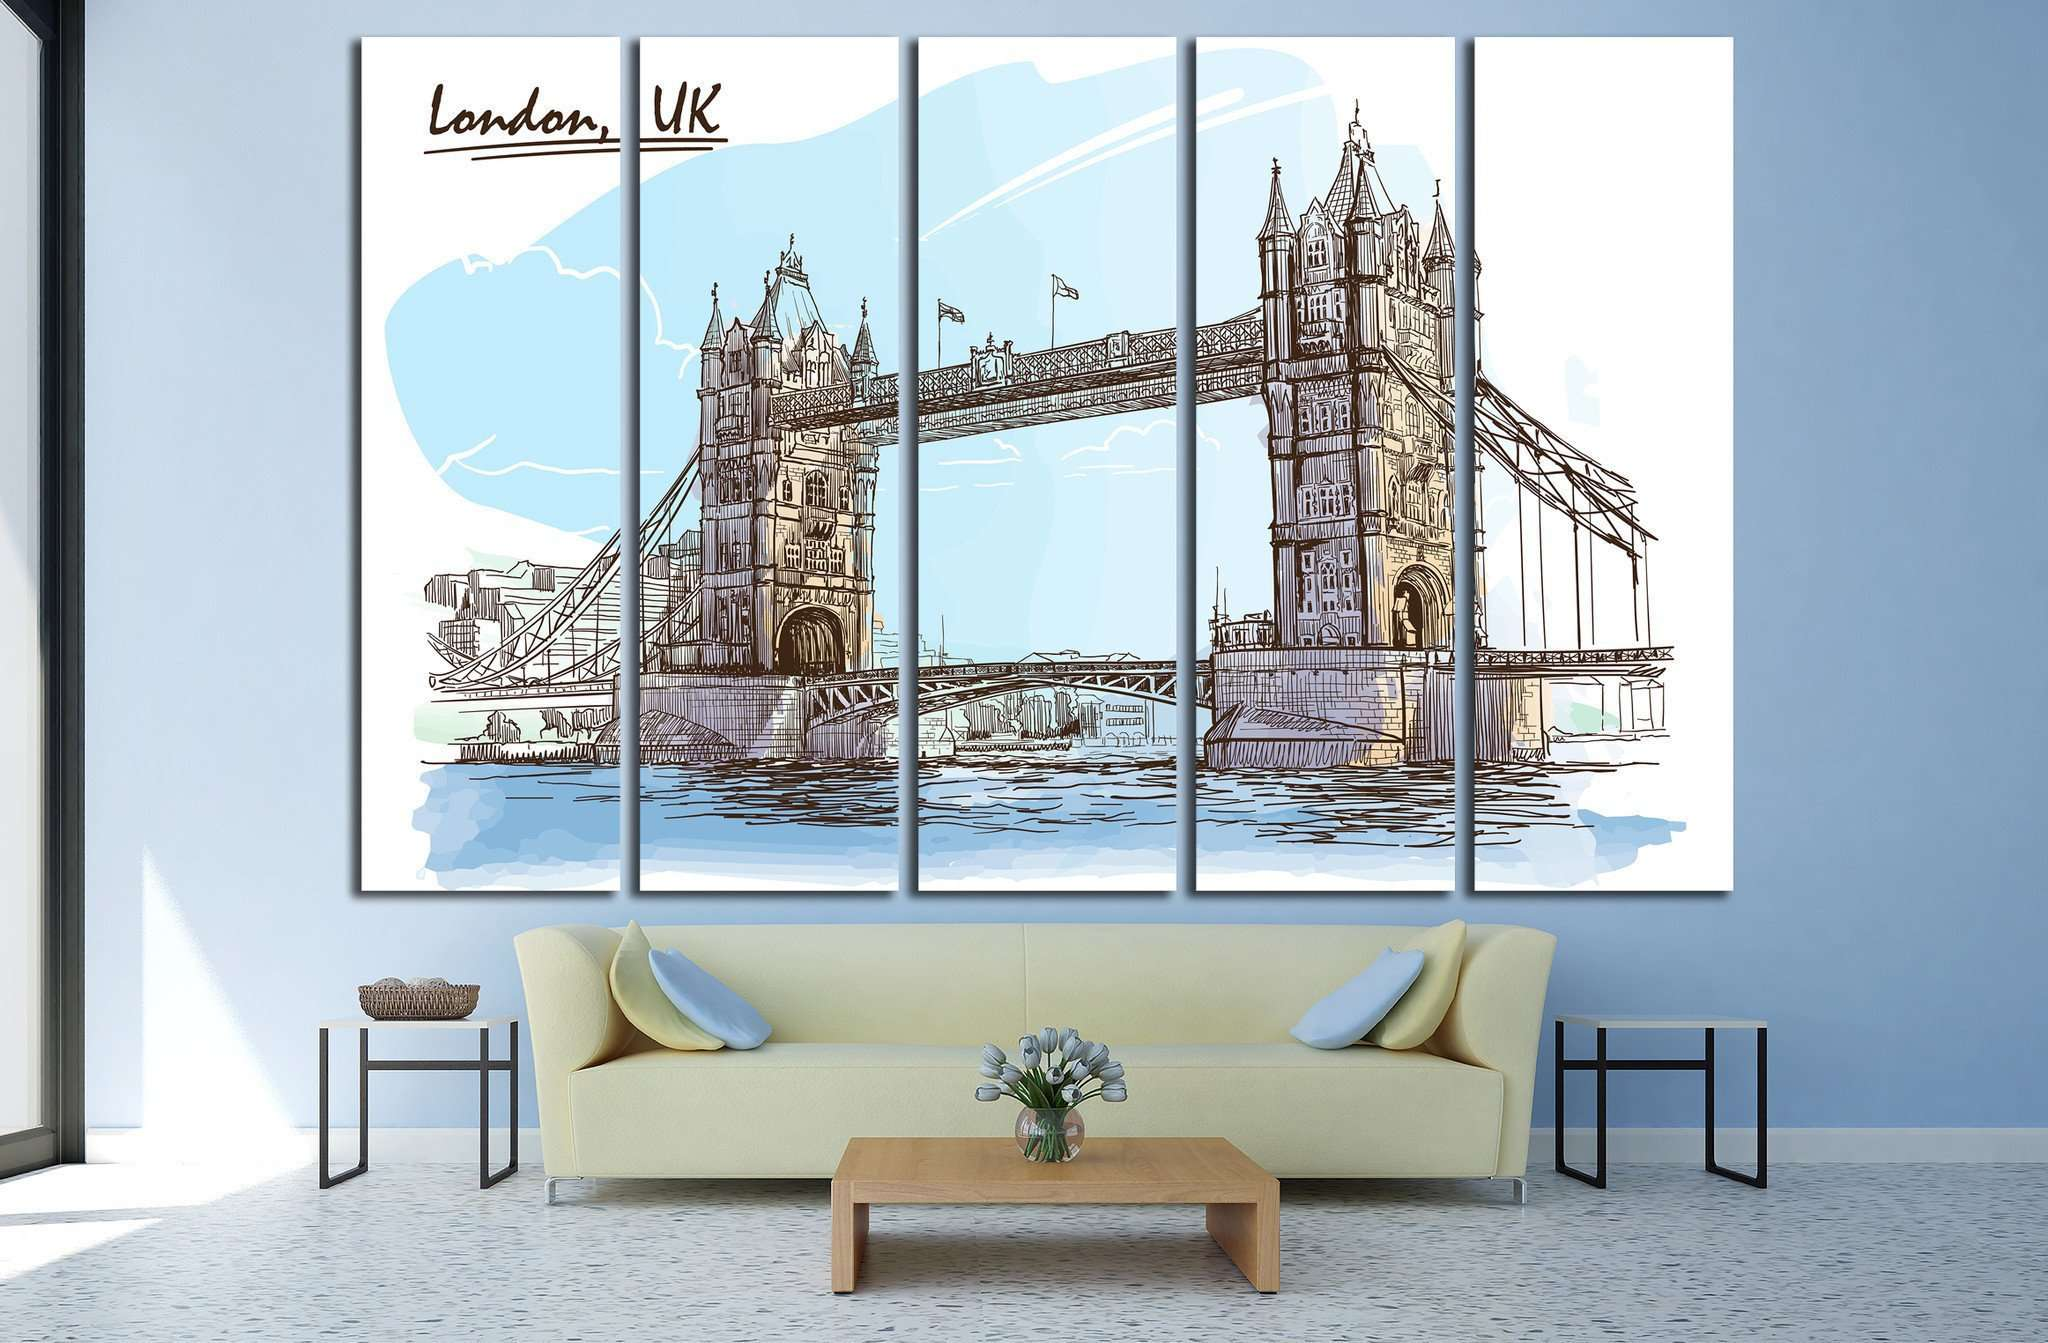 London, UK №577 Ready to Hang Canvas Print